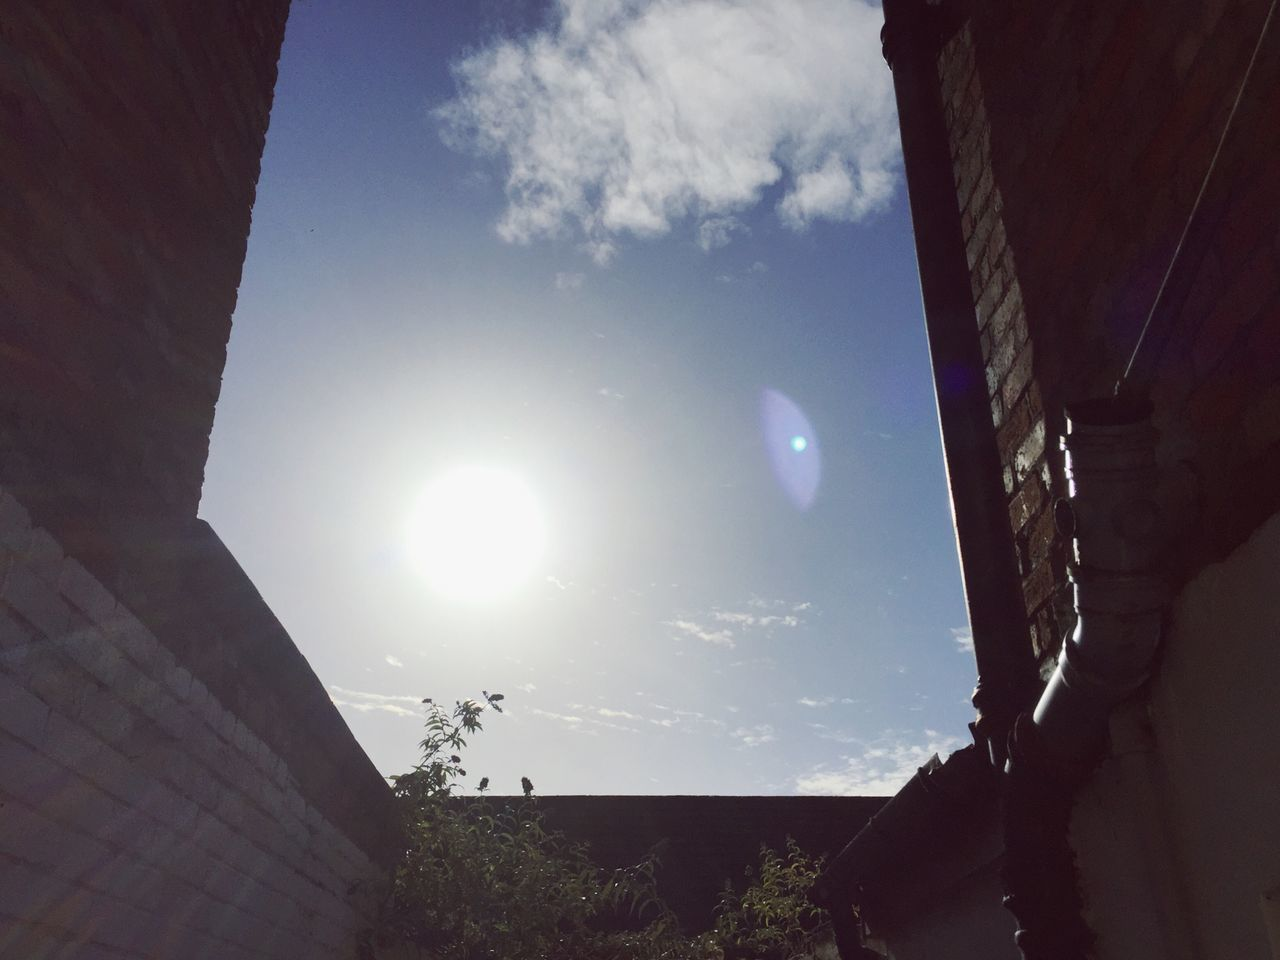 Nach dem Regen kommt die Sonne. Belfast Northern Ireland Sunshine Hope Optimism Optimistic New Beginnings Sun Architecture Blue Sunny Lens Flare Sunbeam Bright Built Structure House Courtyard  Day New Day Travel Happy